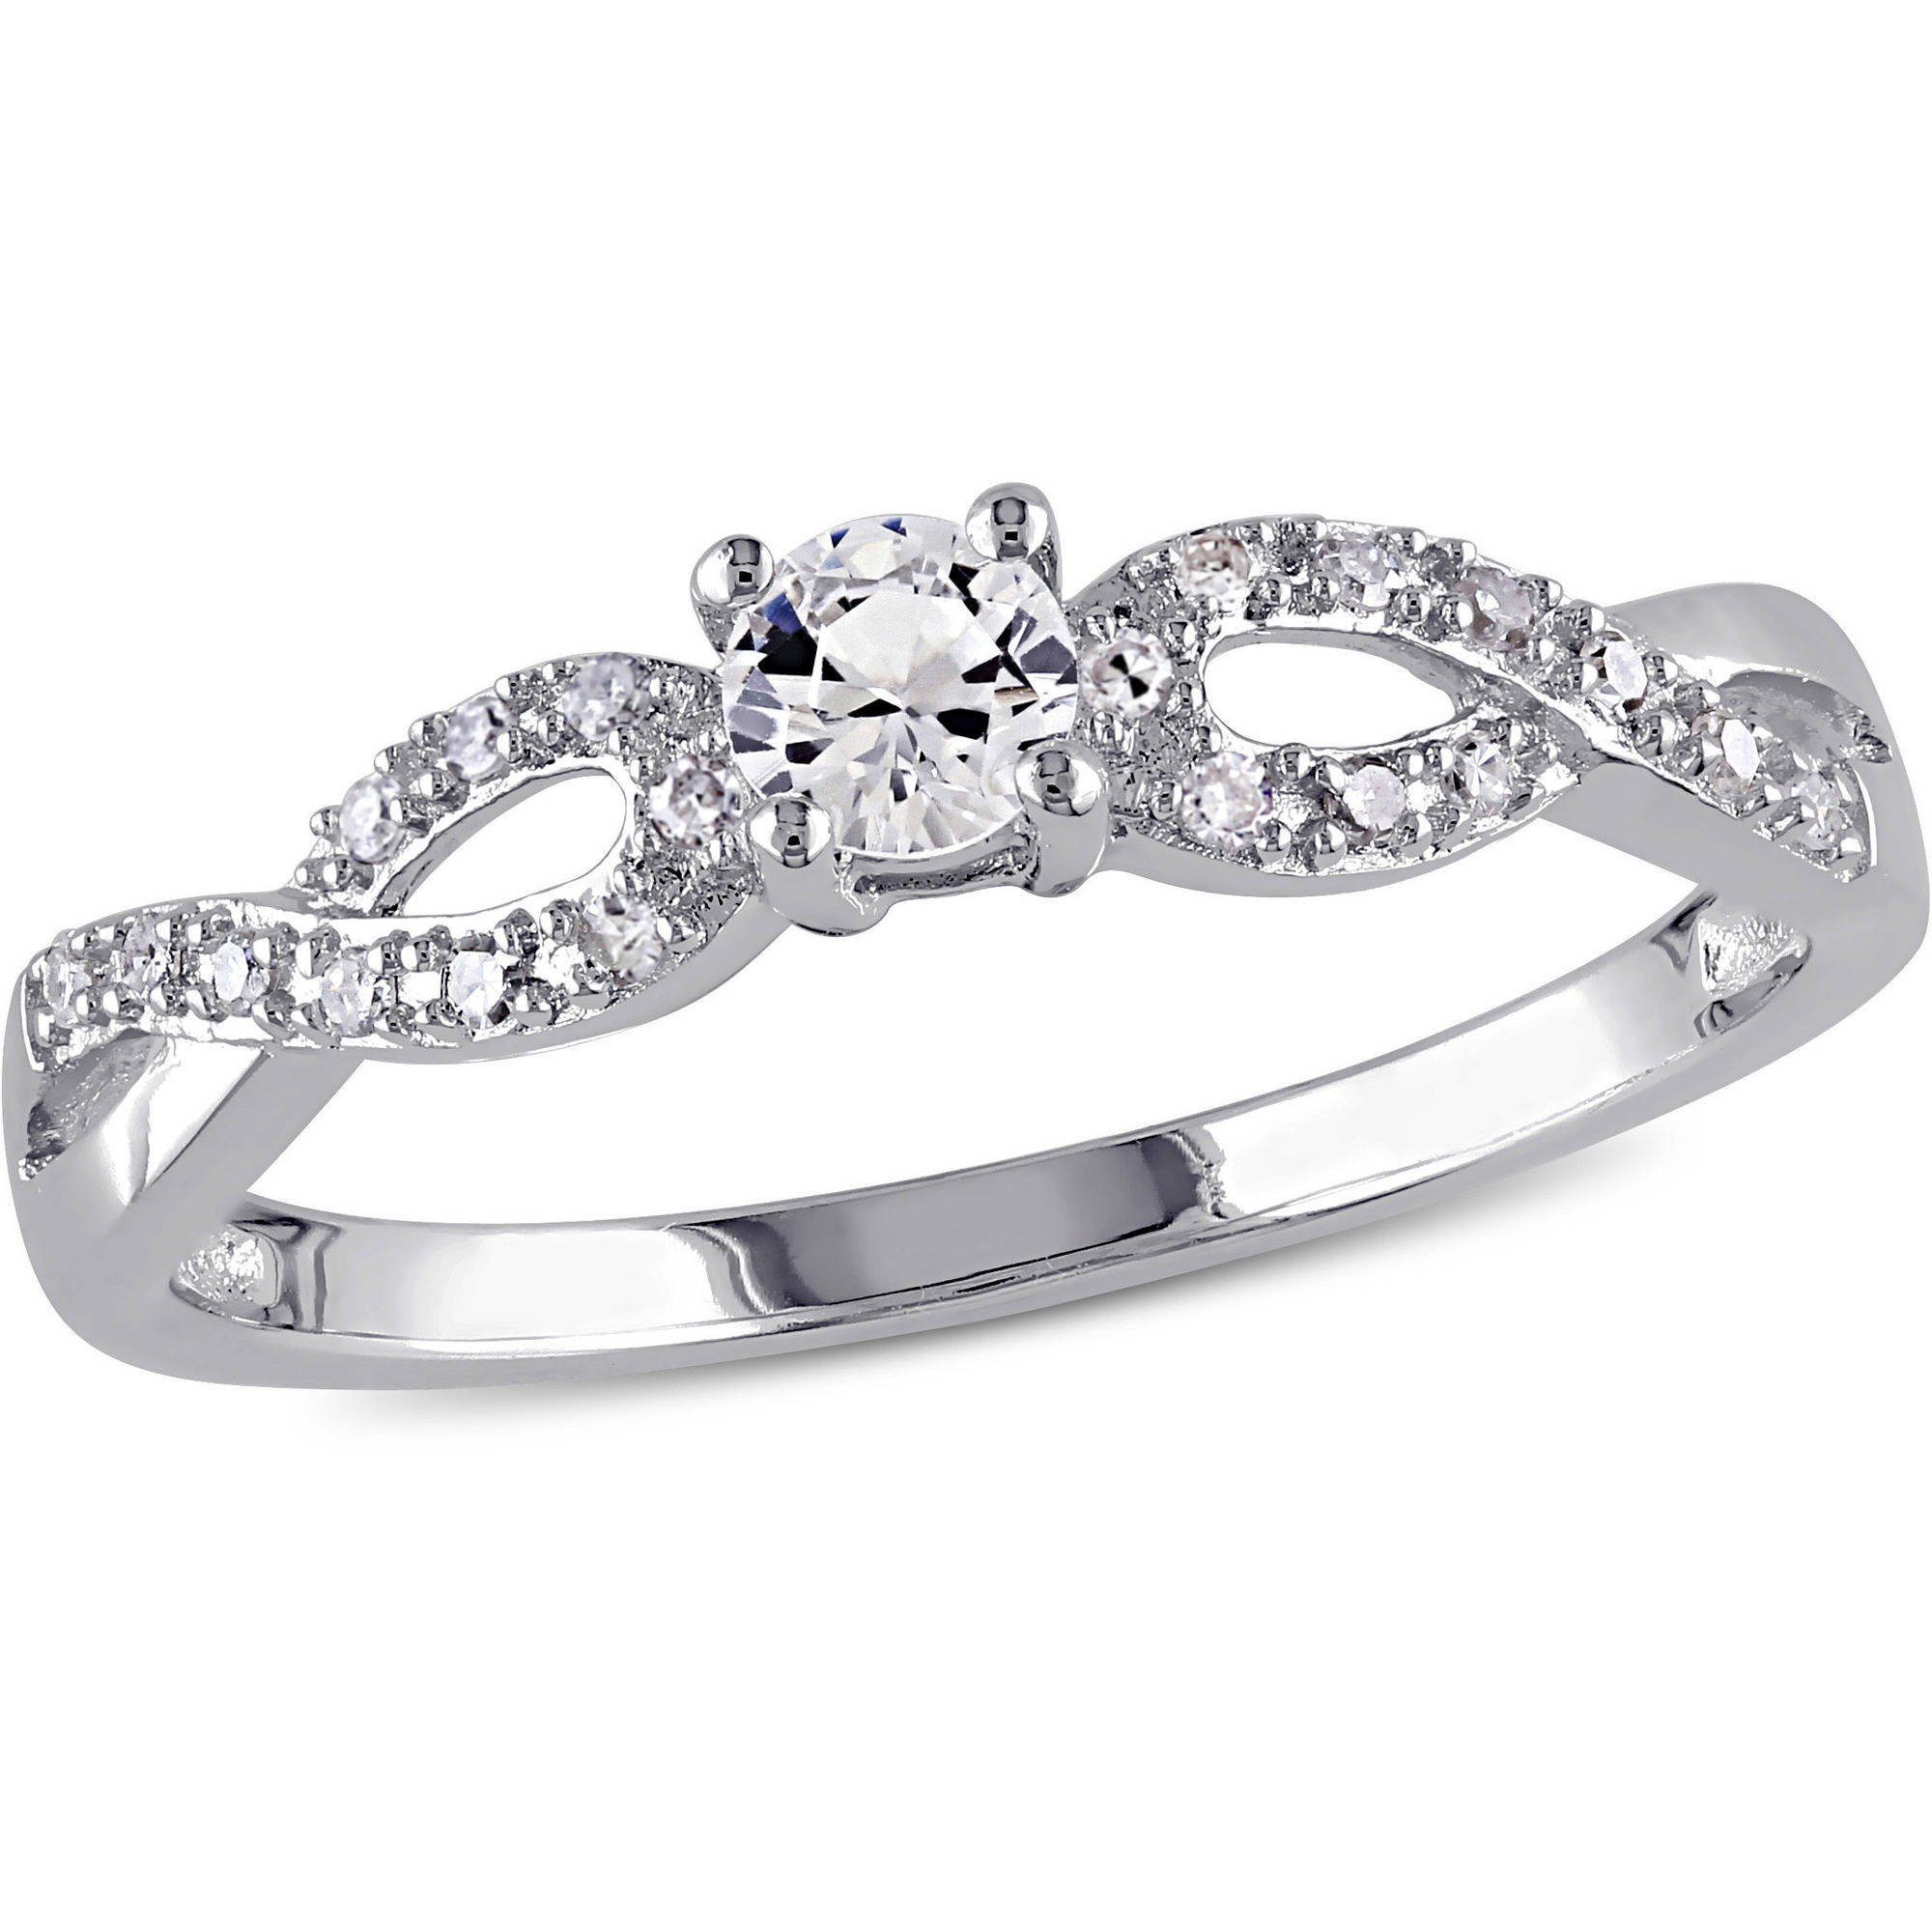 Miabella 1/4 Carat T.G.W. Created White Sapphire and Diamond-Accent Sterling Silver Infinity Engagement Ring